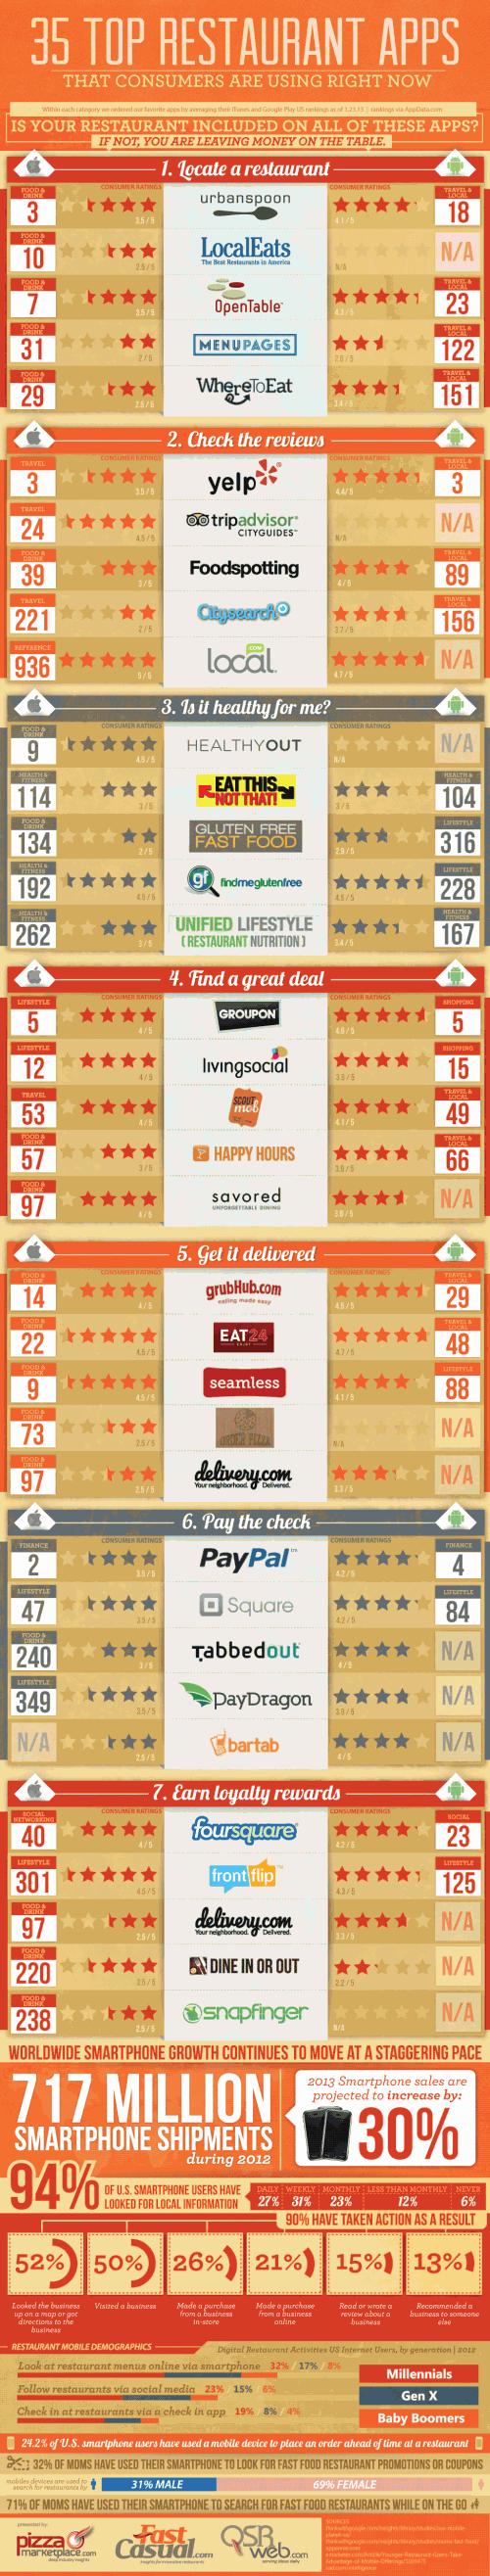 The 35 Most Popular Mobile Restaurant Apps (Infographic)